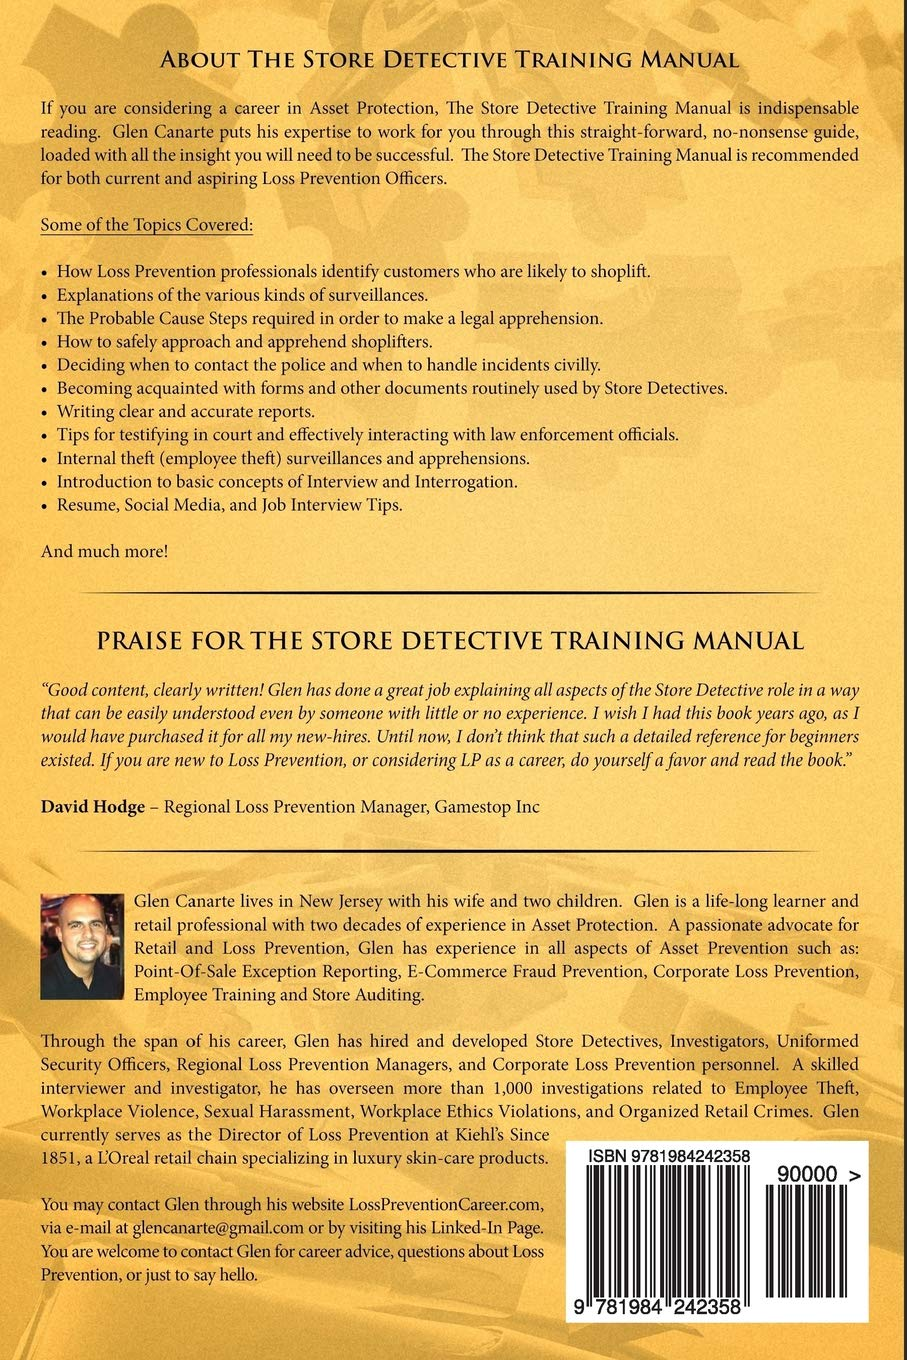 The Store Detective Training Manual: A Practical Reference for Current and  Aspiring Loss Prevention Officers: Glen Canarte: 9781984242358: Amazon.com:  Books